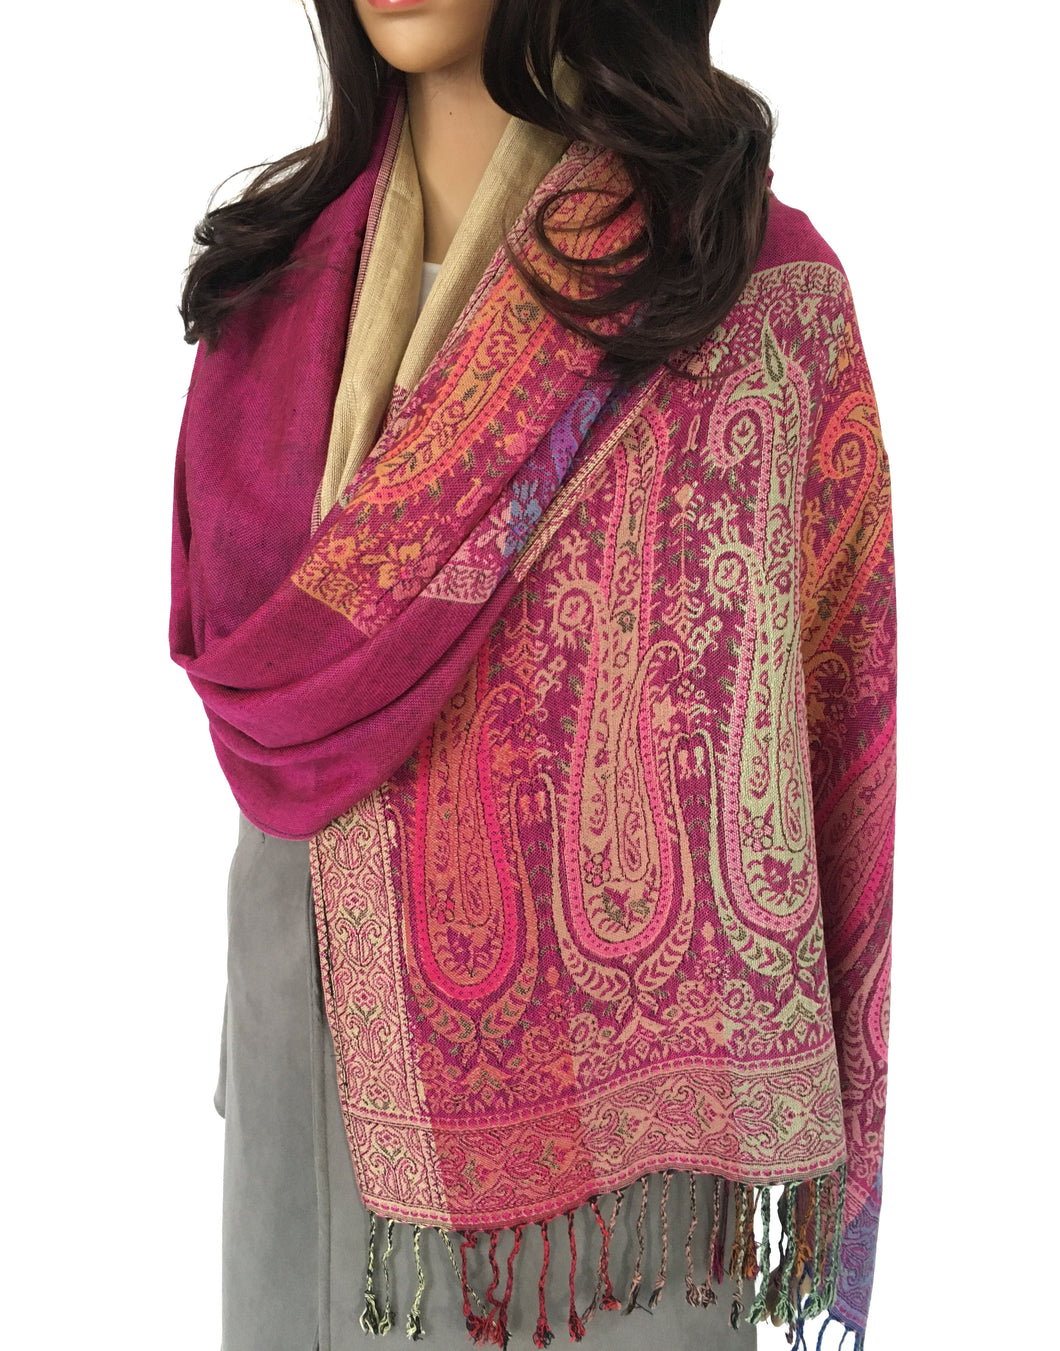 LARGE PINK RAINBOW MULTI COLOUR PAISLEY PRINT PASHMINA SHAWL SCARF